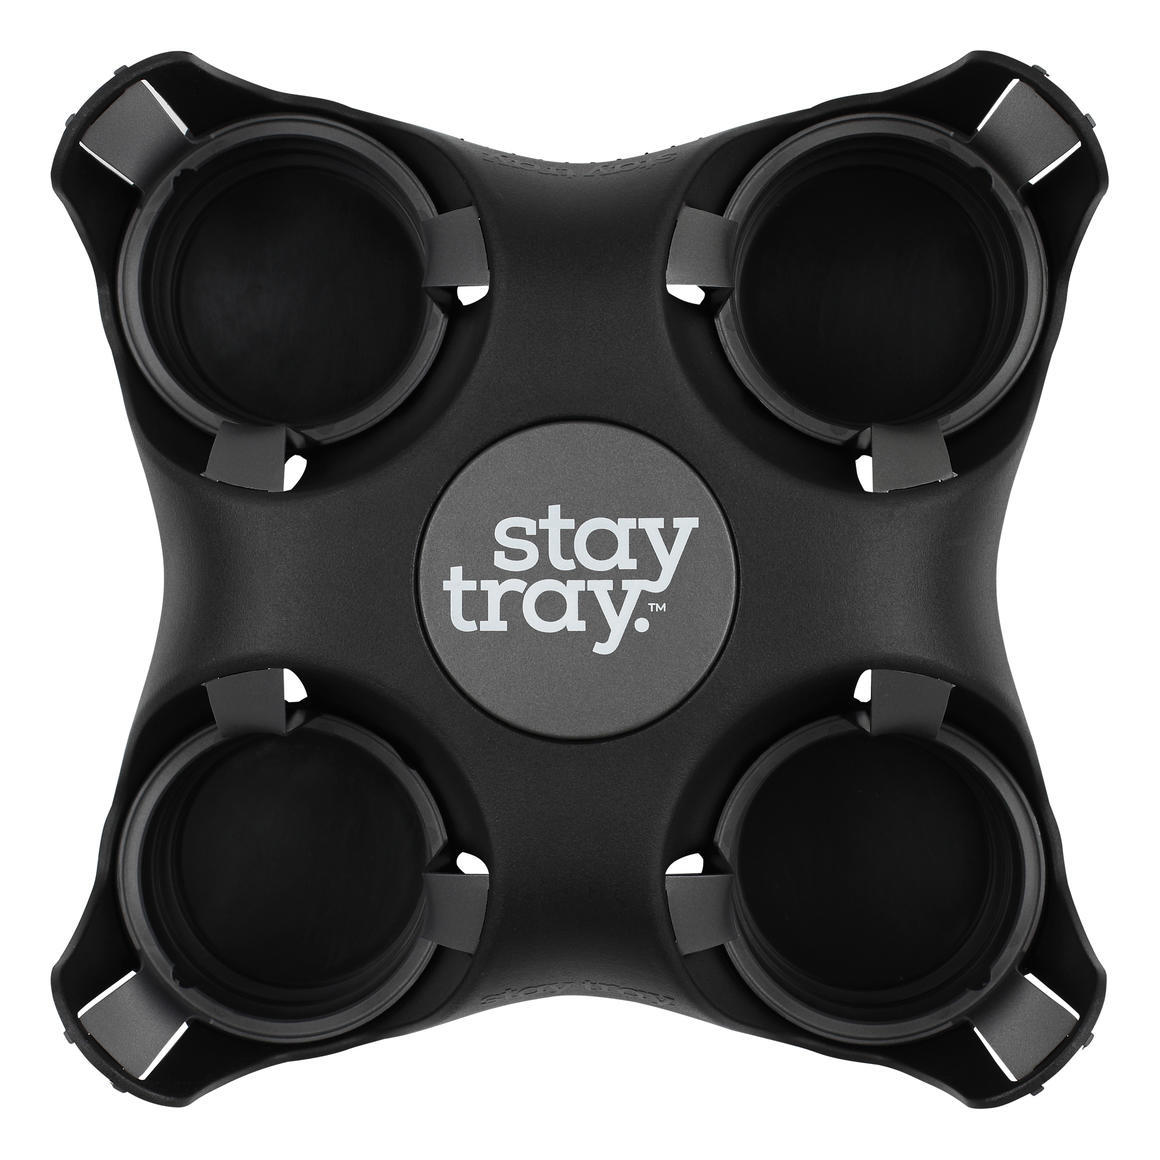 Stay tray Four Cup Holder Espresso   Trada Marketplace